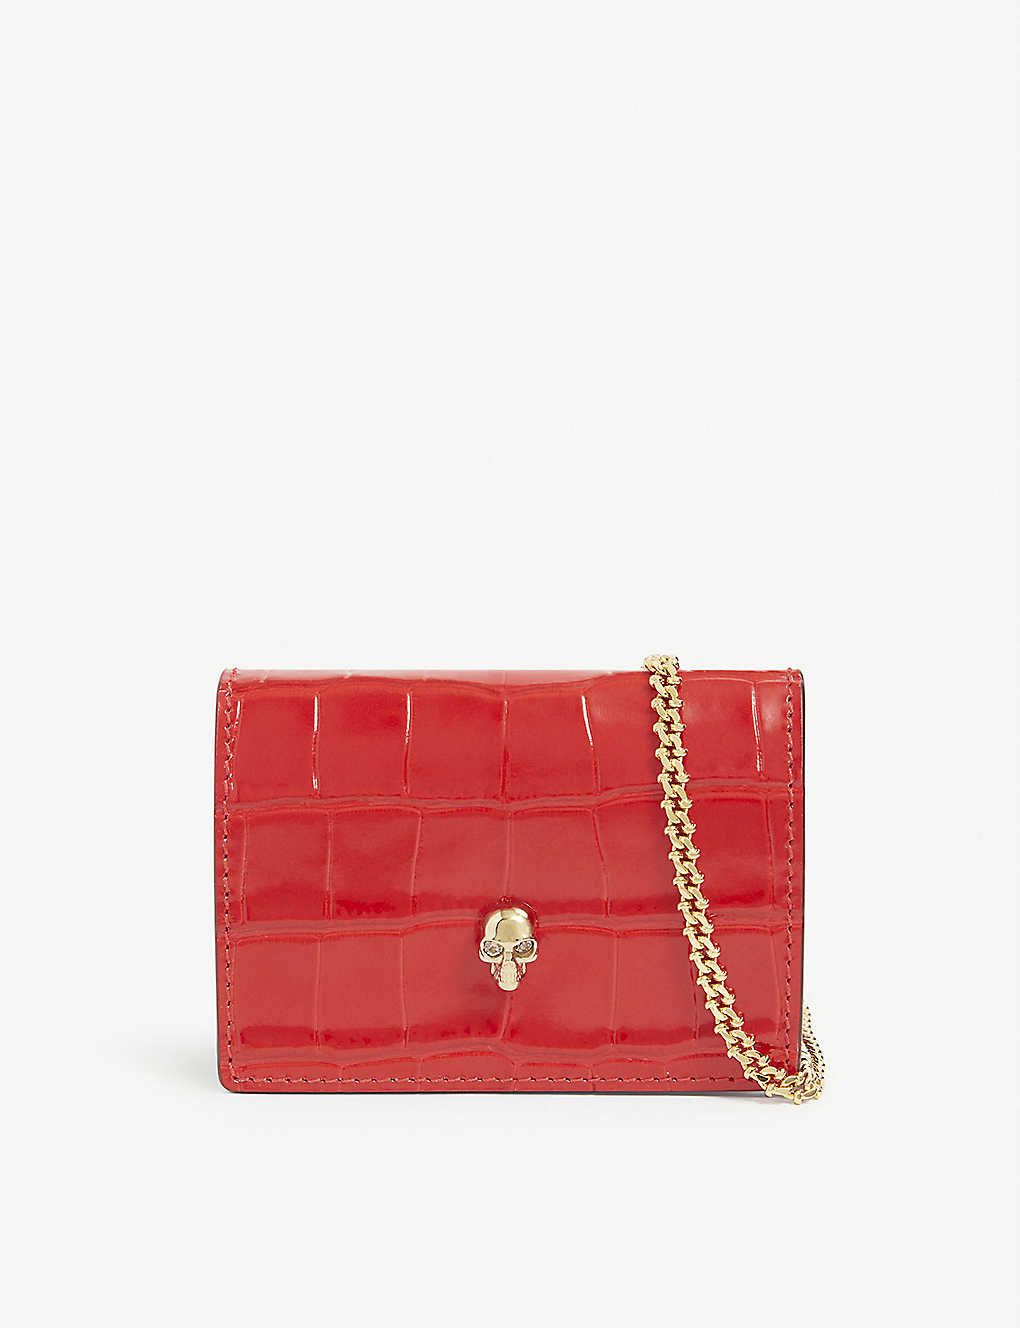 ALEXANDER MCQUEEN: Crocodile-embossed leather cardholder with gold chain